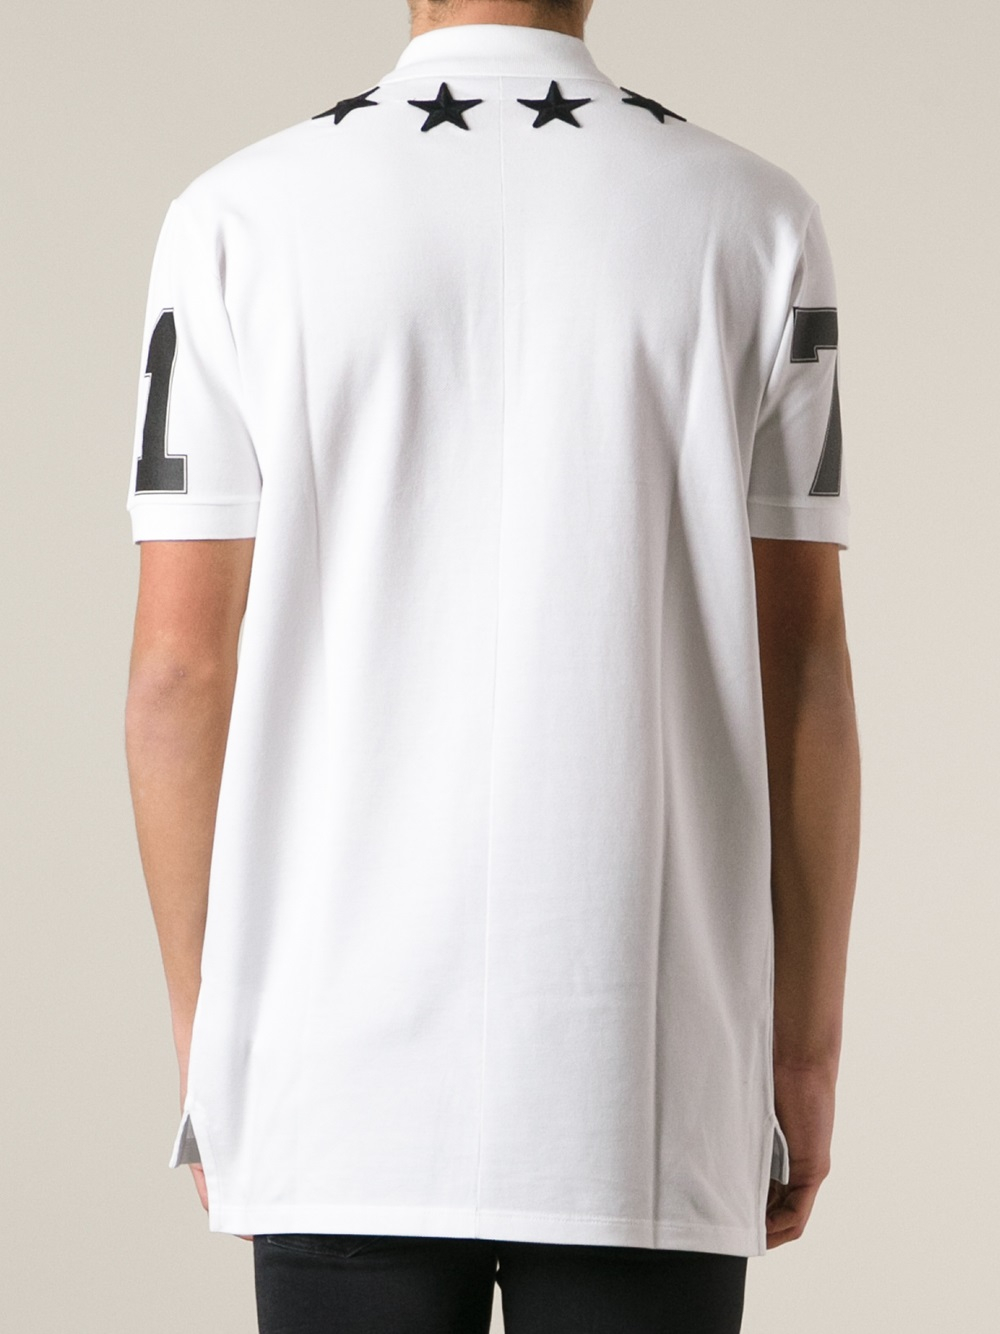 ccbb822d55ea Lyst - Givenchy Oversized Polo Shirt in White for Men